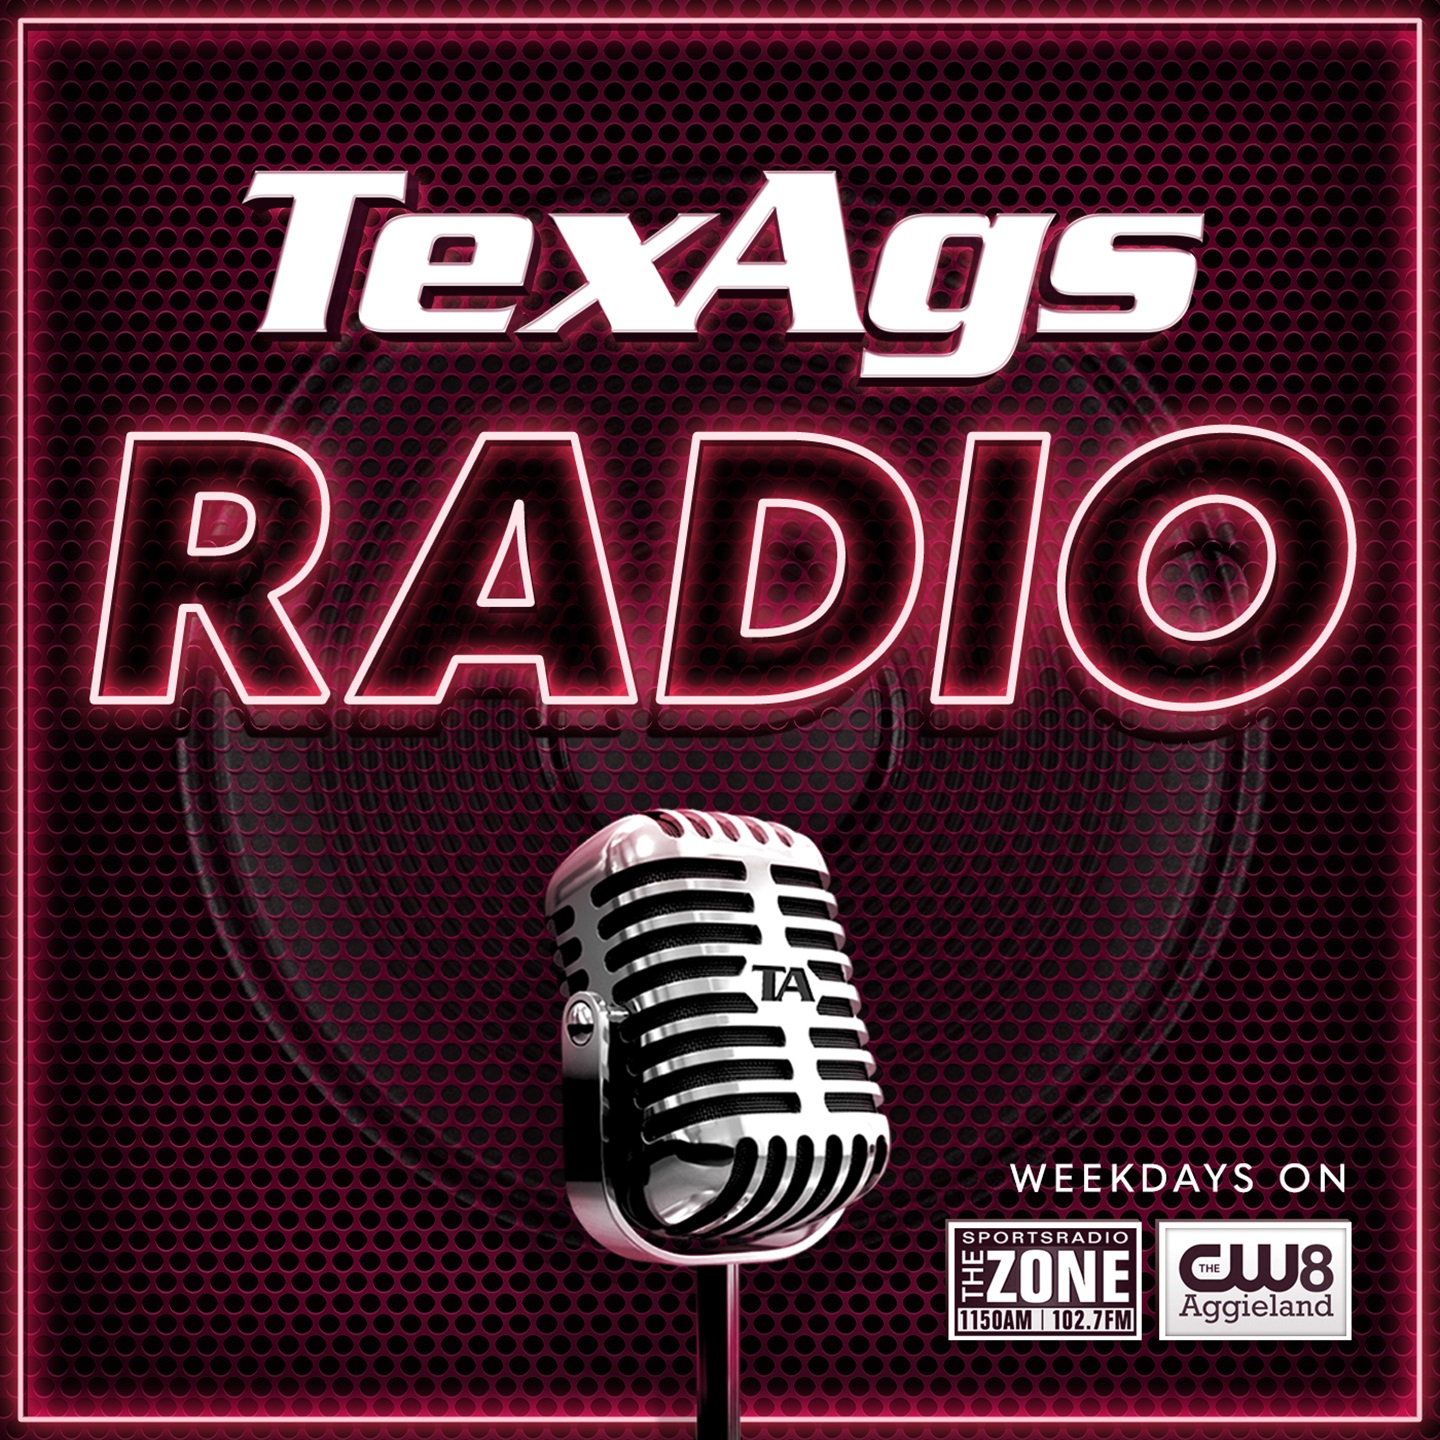 TexAgs Radio: Monday (7/15) full show